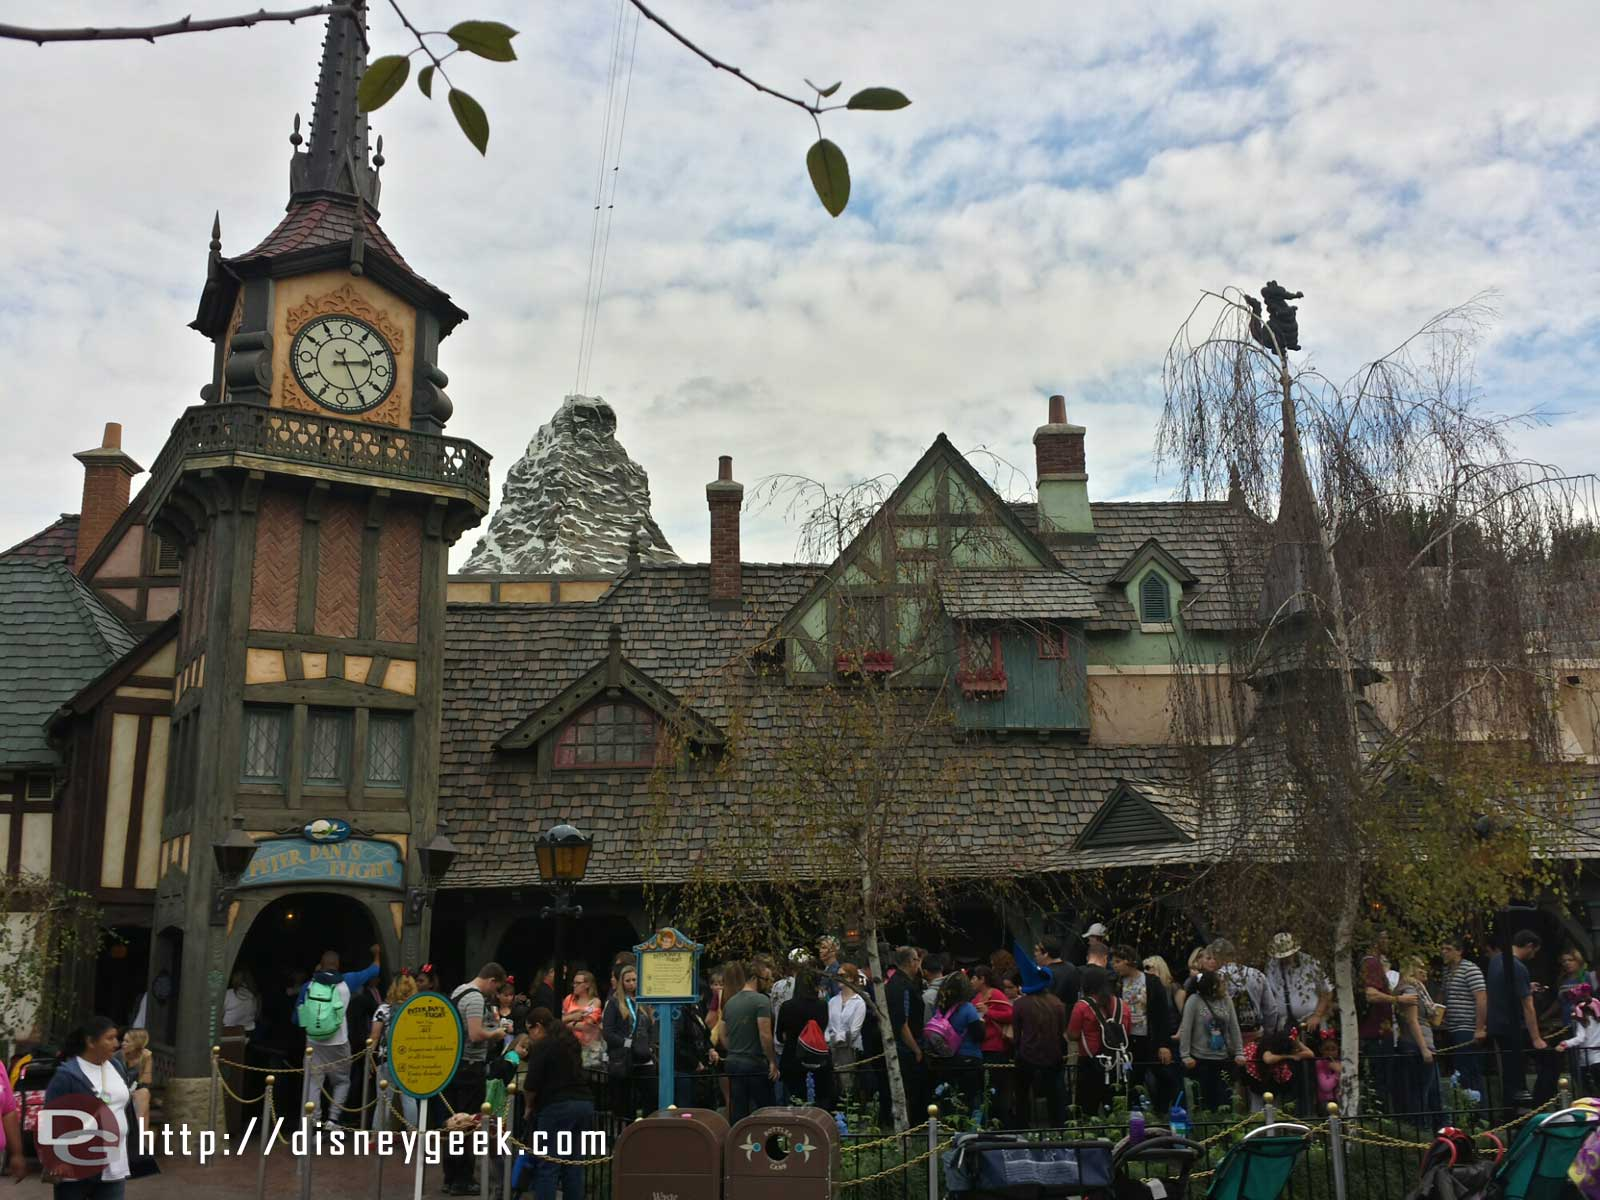 Peter Pan's Flight with the Matterhorn in the background #Disneyland